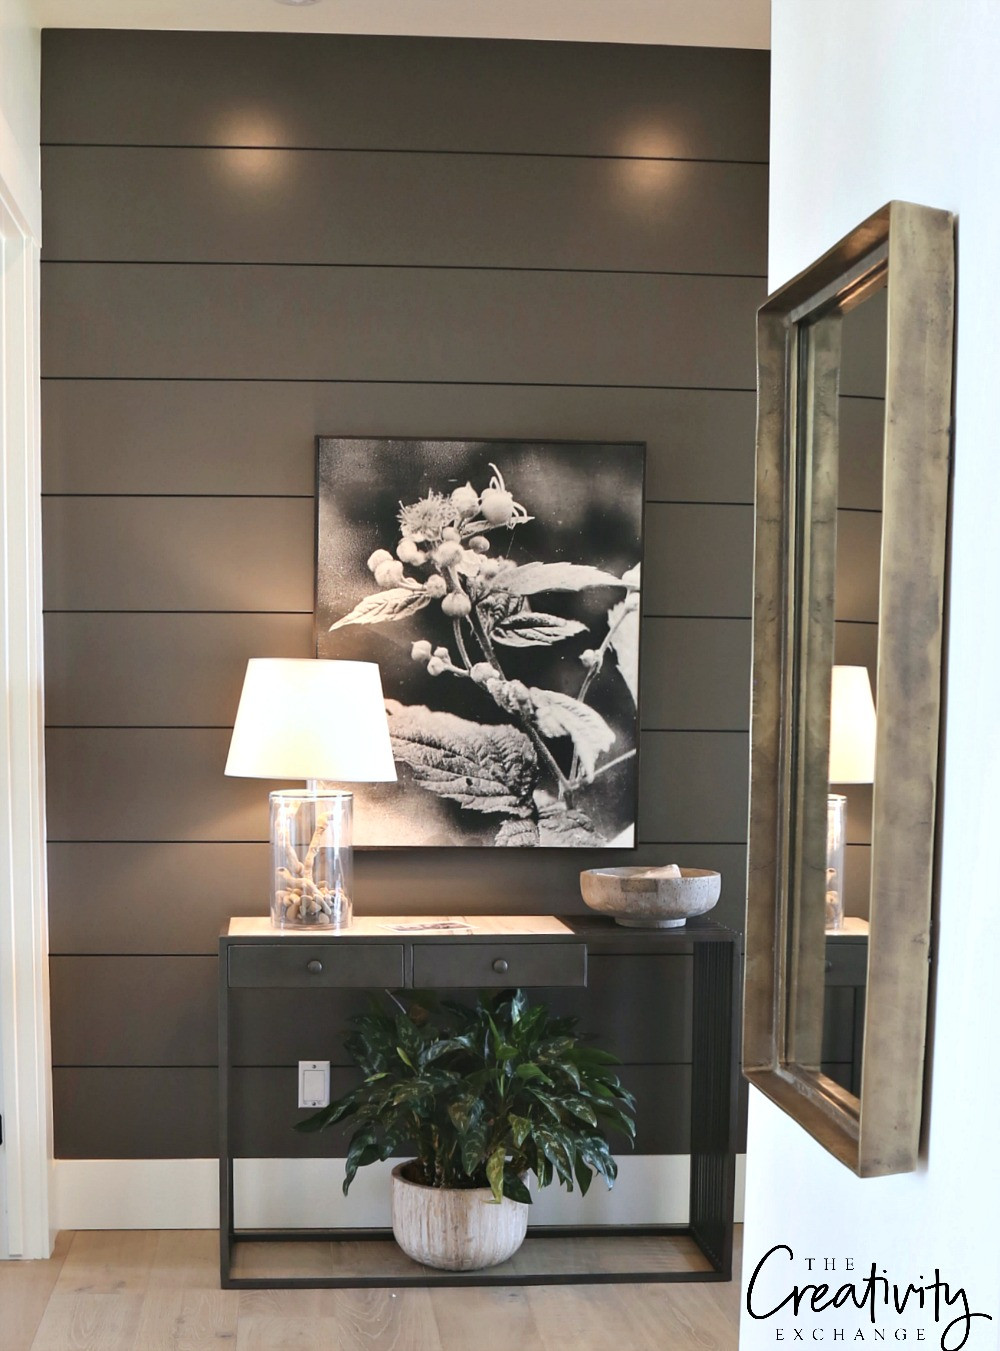 Best ideas about Painted Accent Walls . Save or Pin Painted Shiplap Accent Walls in Rich Colors Now.